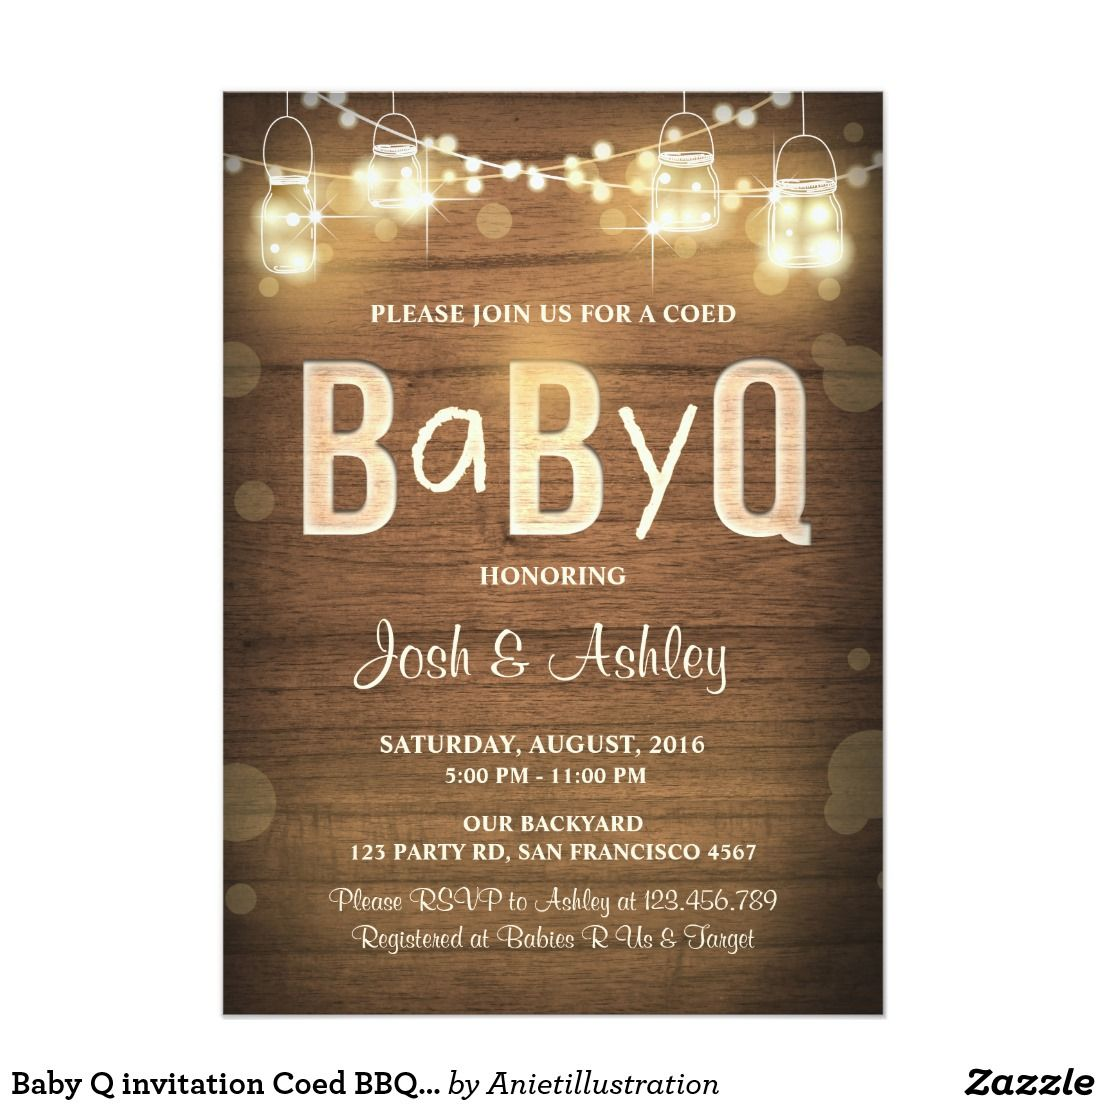 Baby Q invitation Coed BBQ Baby Shower Rustic Wood | Babies and ...